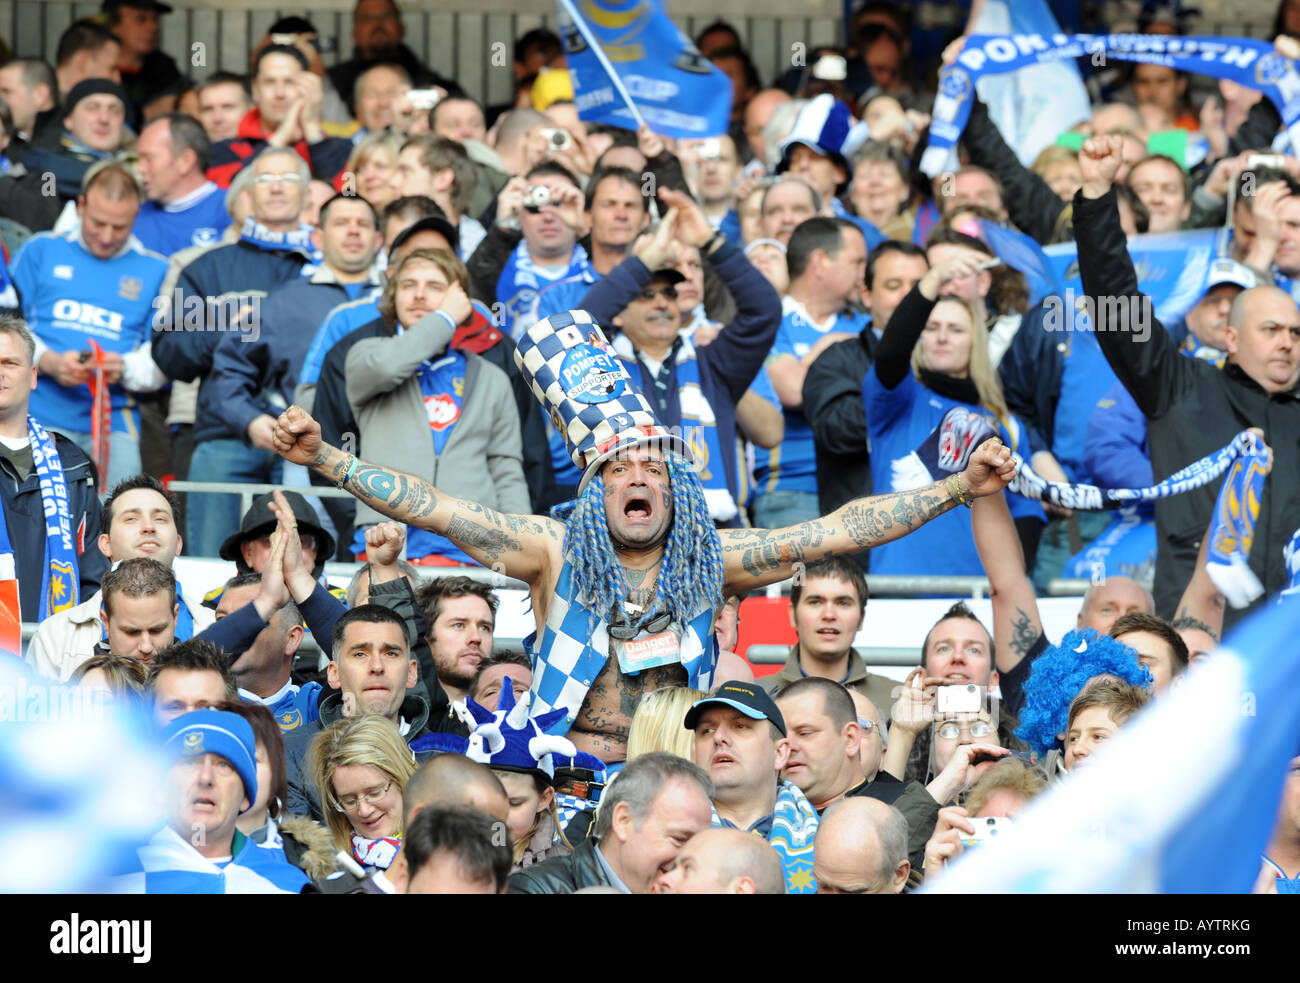 Portsmouth Football Club supporter John Westwood who changed his name by deed poll to John Portsmouth Football Club - Stock Image